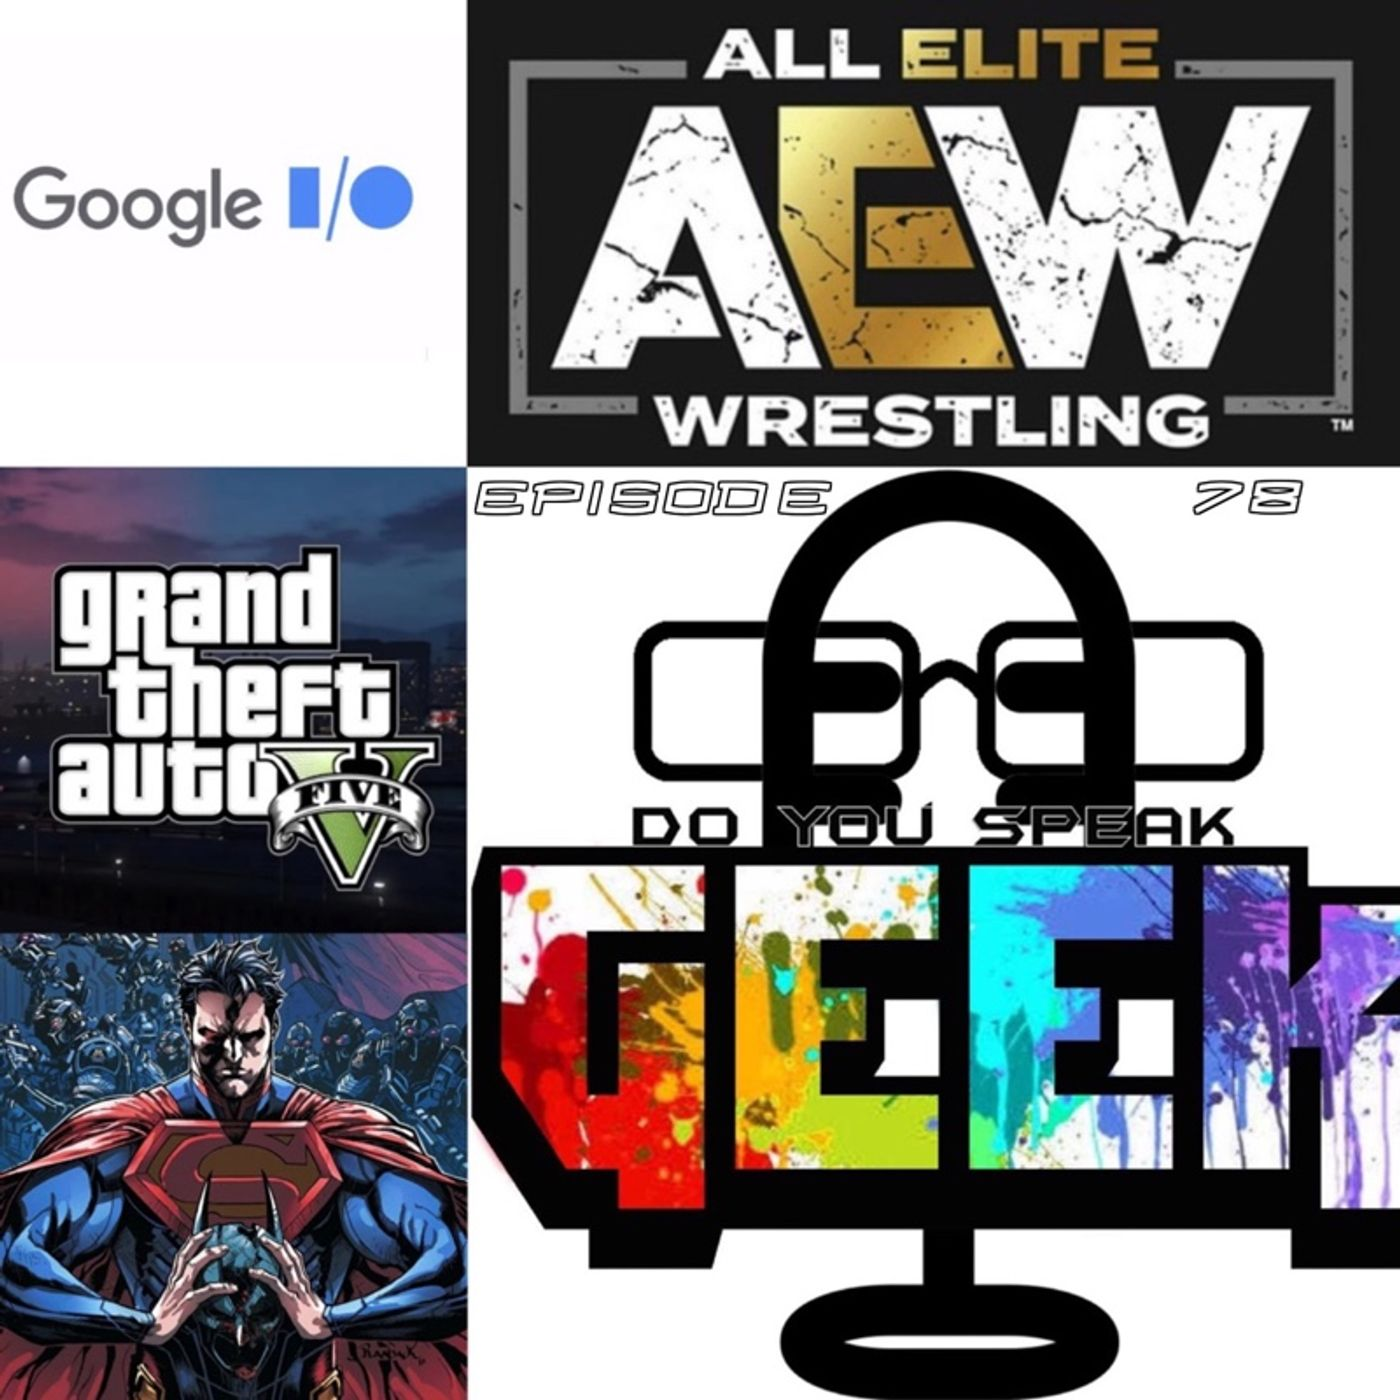 Episode 78 (Injustice, Google I/O, Will Ospreay, and more)